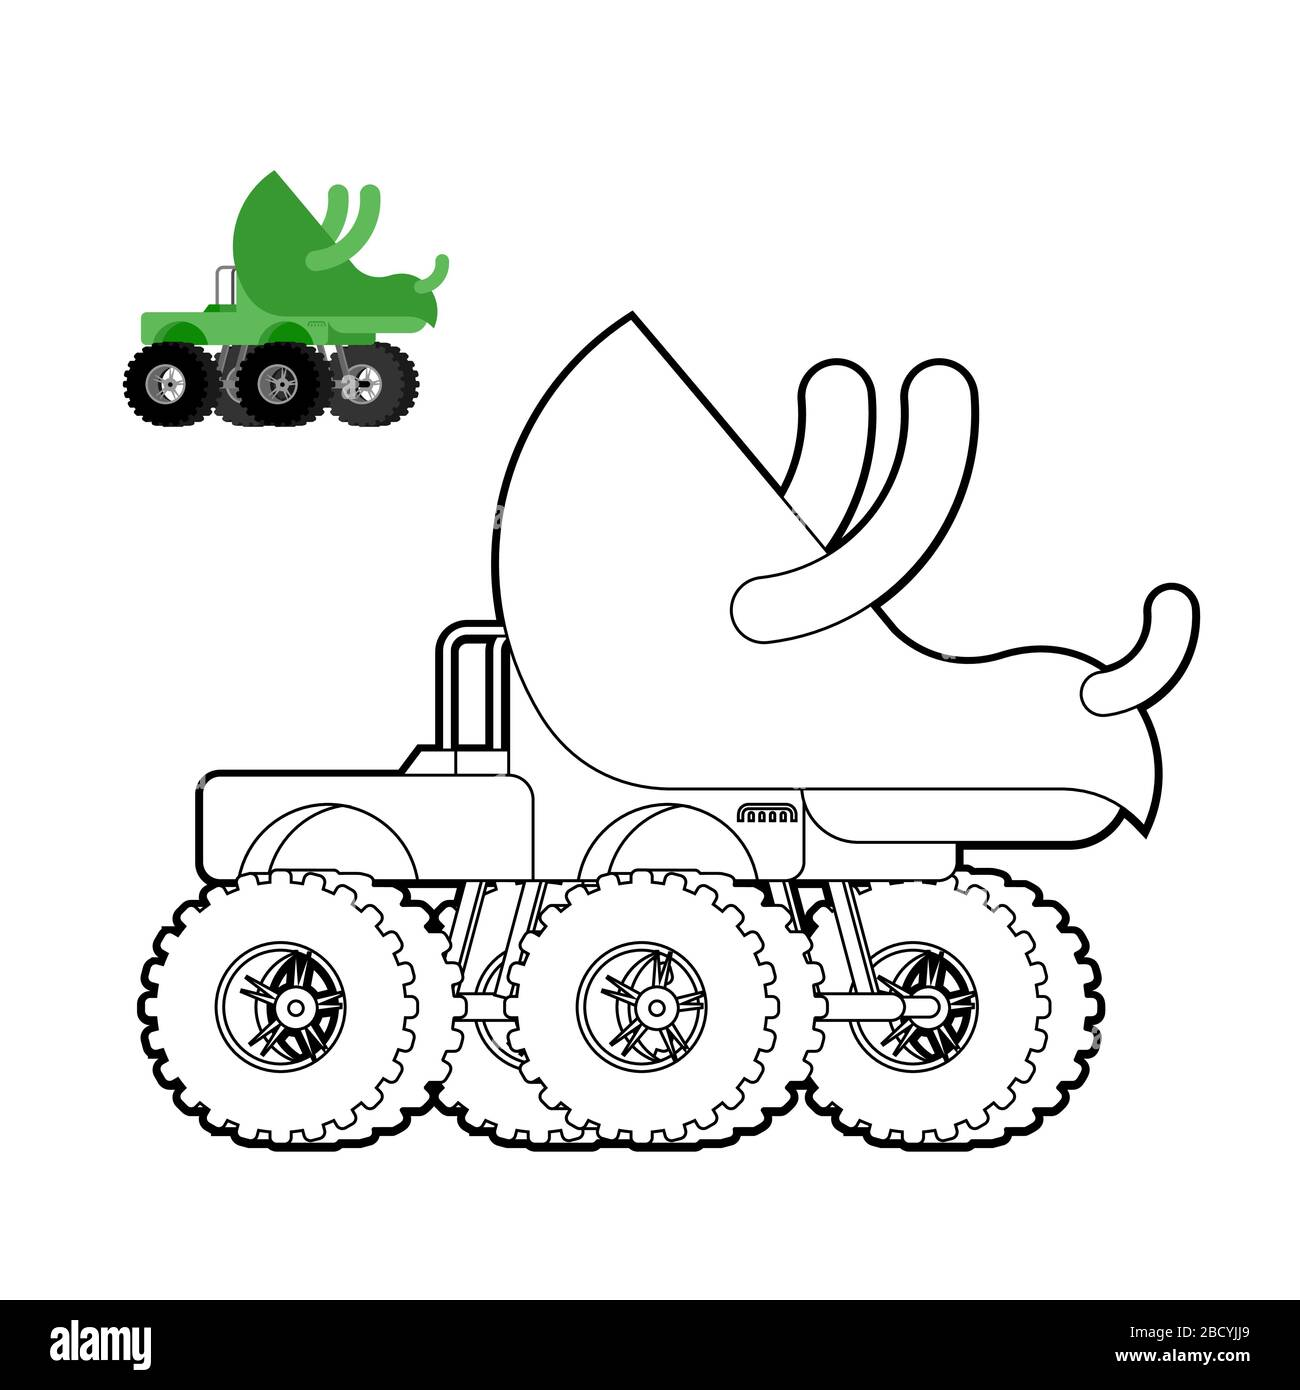 Free Race Car Coloring Pages Tag: 25 Awesome Monster Truck ... | 1390x1300